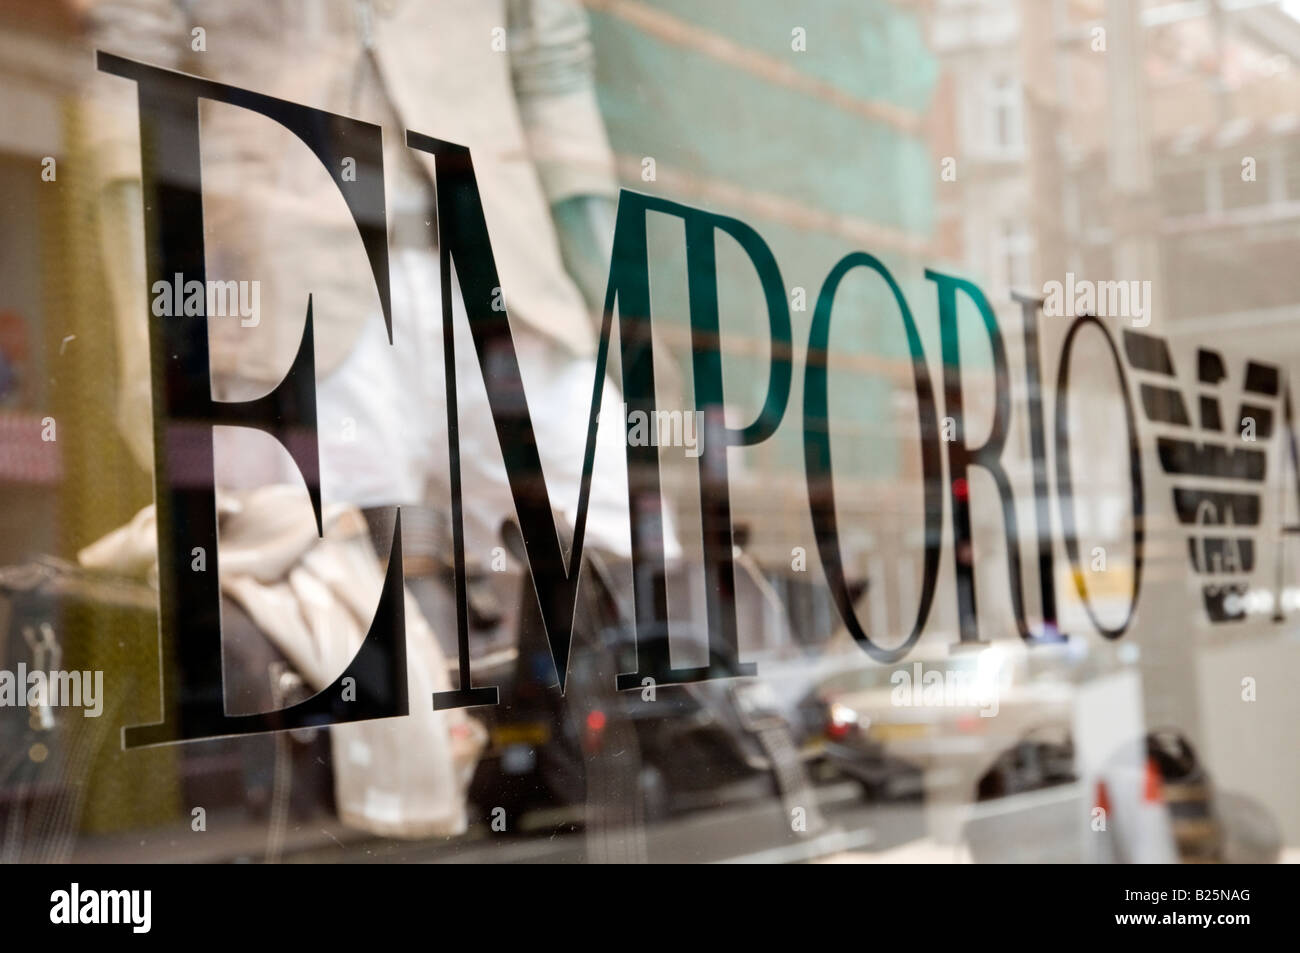 Emporio Armani shop in New Bond Street London England UK - Stock Image